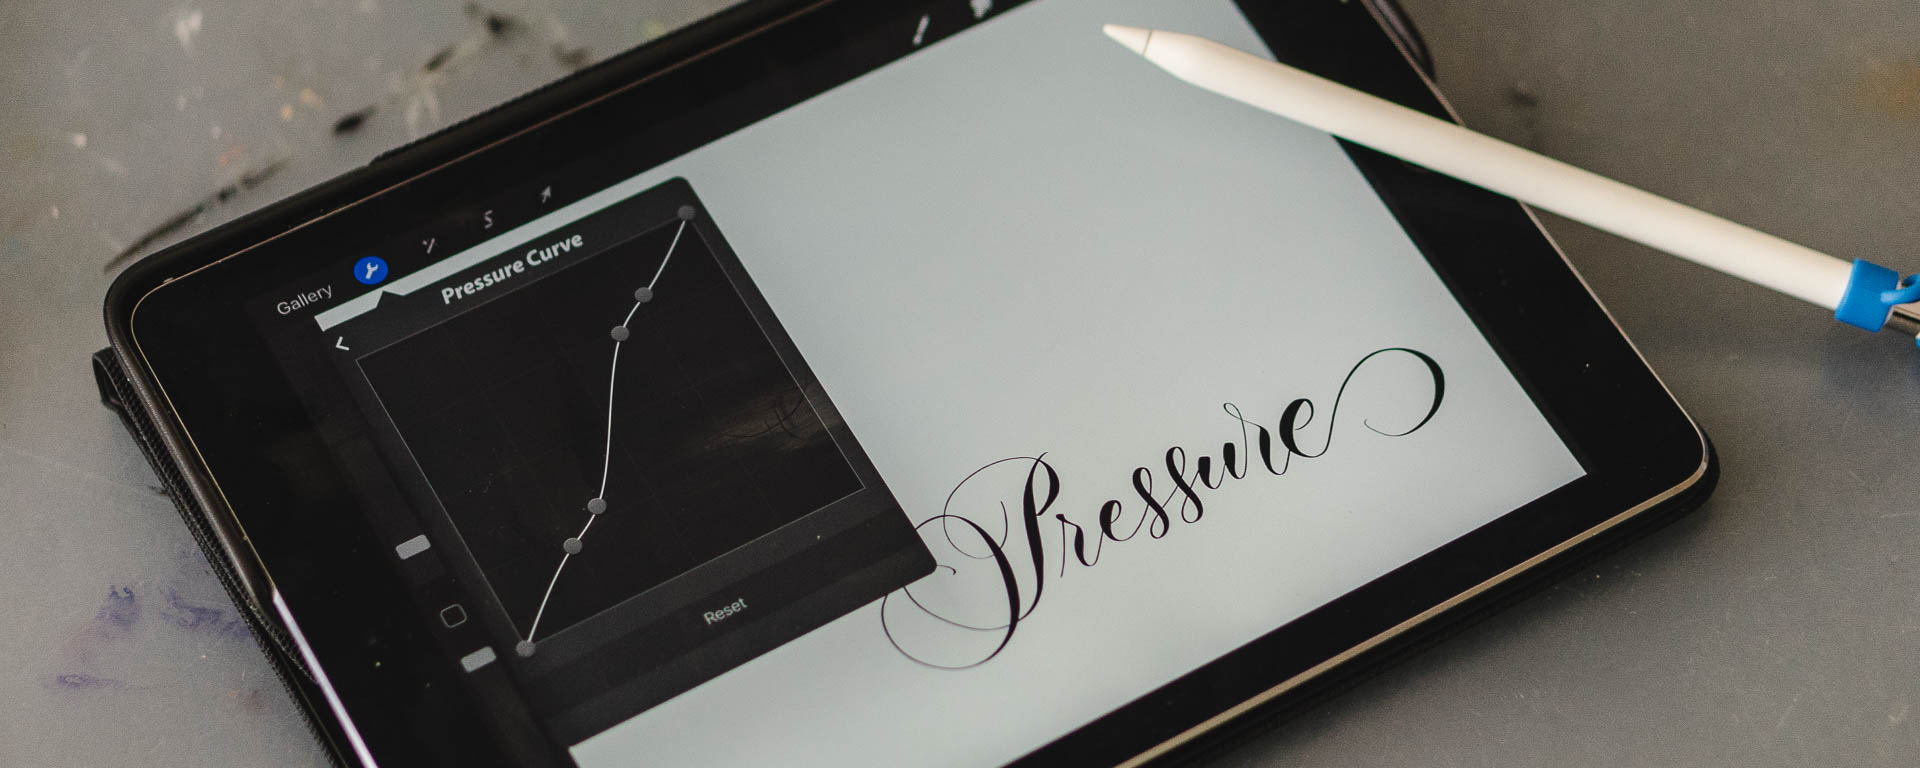 The perfect pressure curve for your iPad Lettering